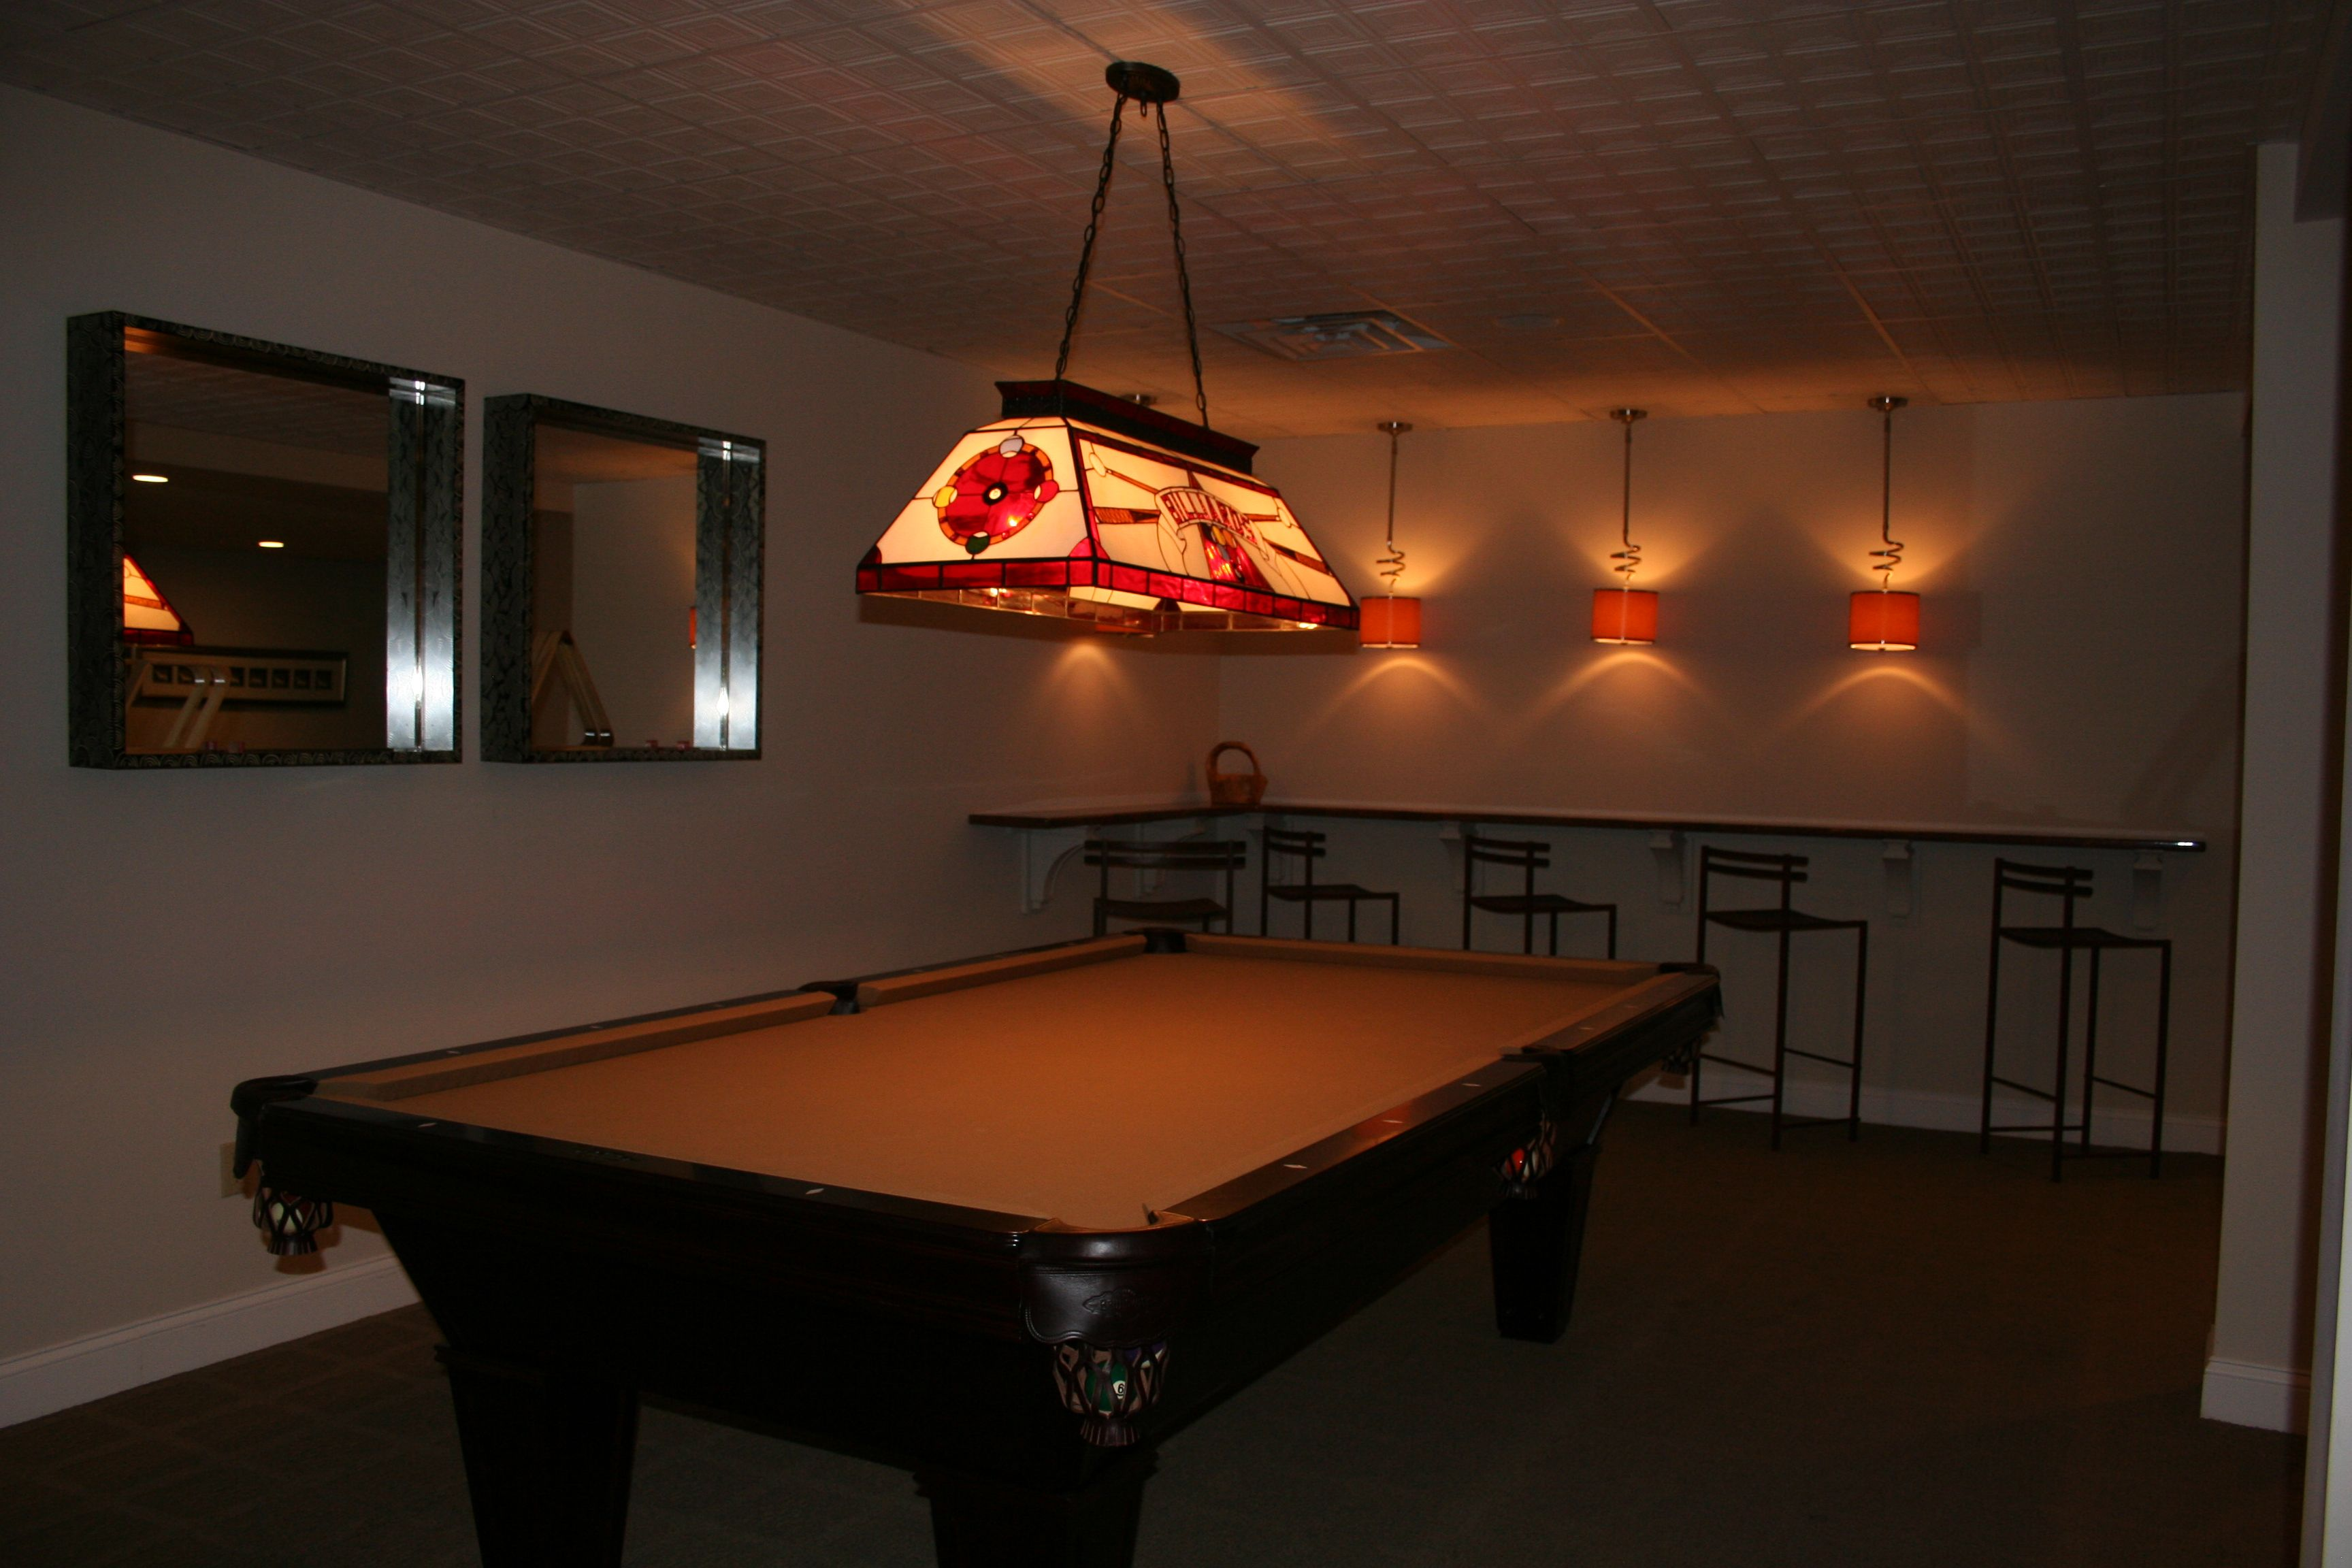 Basement Pool Table Wall Seating And Low Light Pool Table Wall Seating Basement Pool